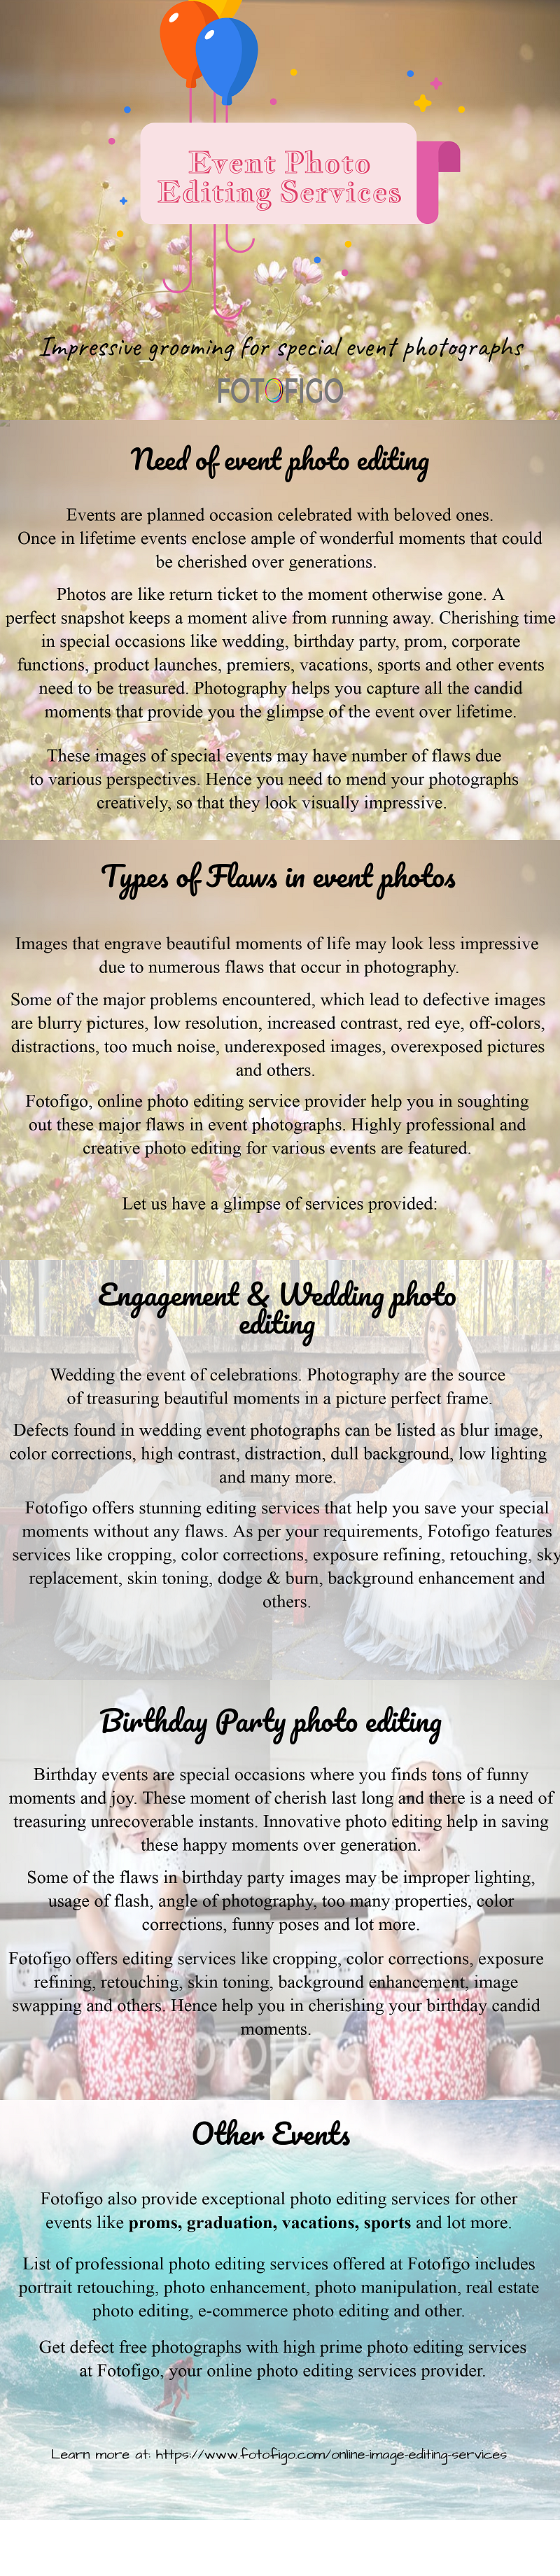 Event Photo editing services